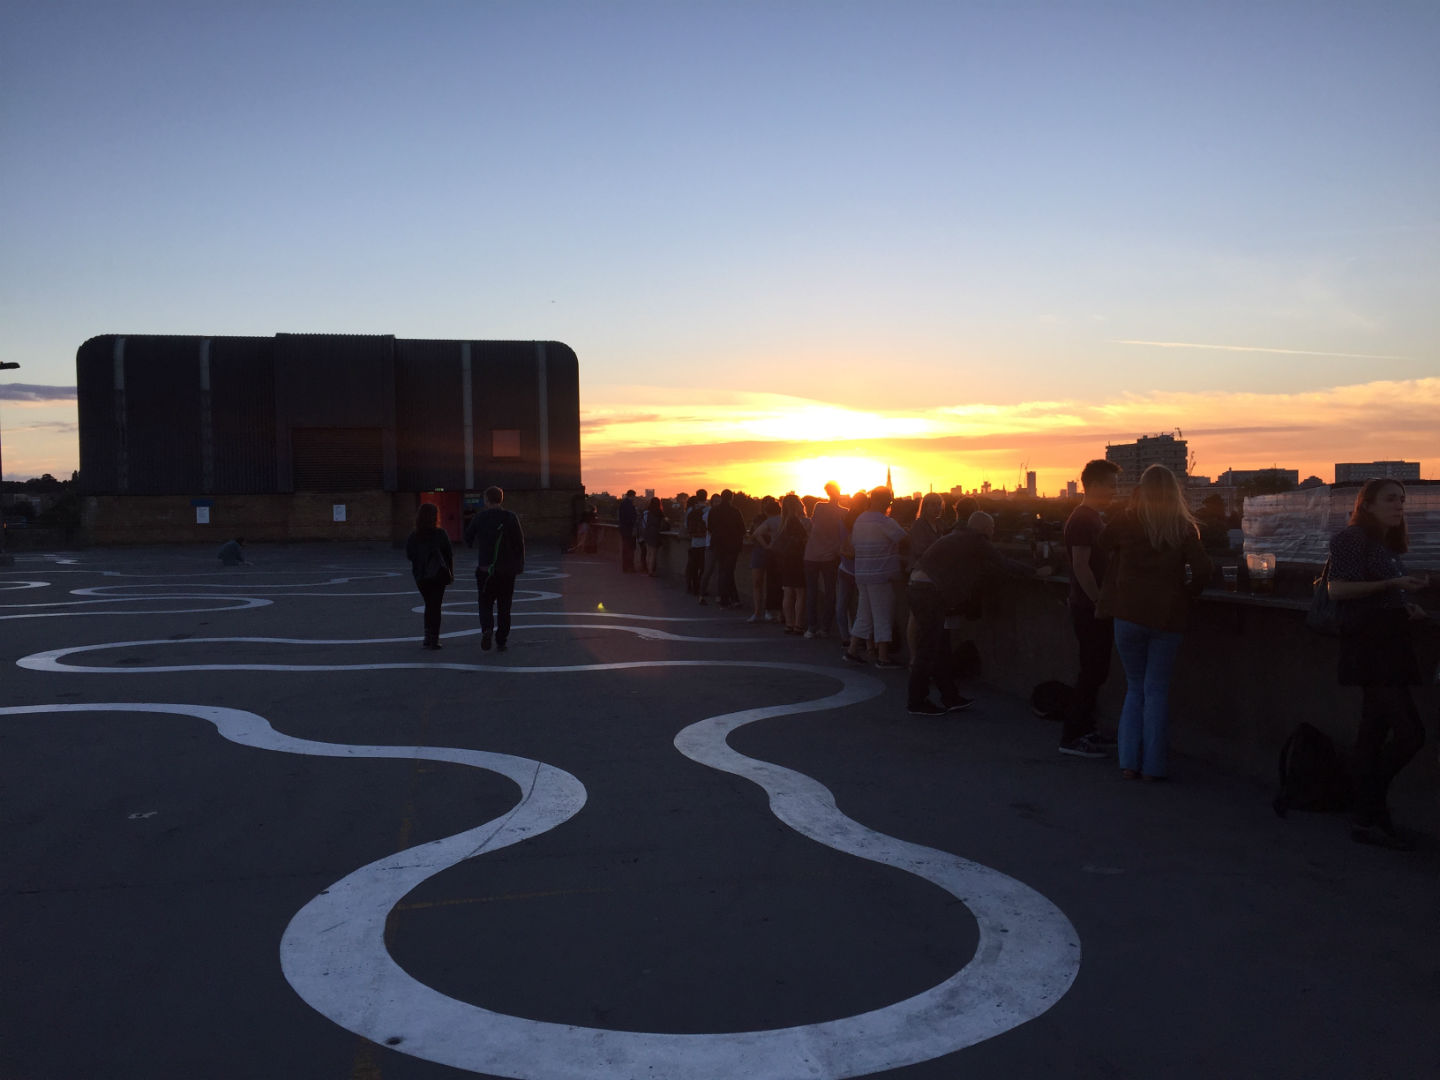 And it's gone: artist Richard Wentworth's Agora abstract art on the roof of the multi-storey car looks good at night. Photo: SE